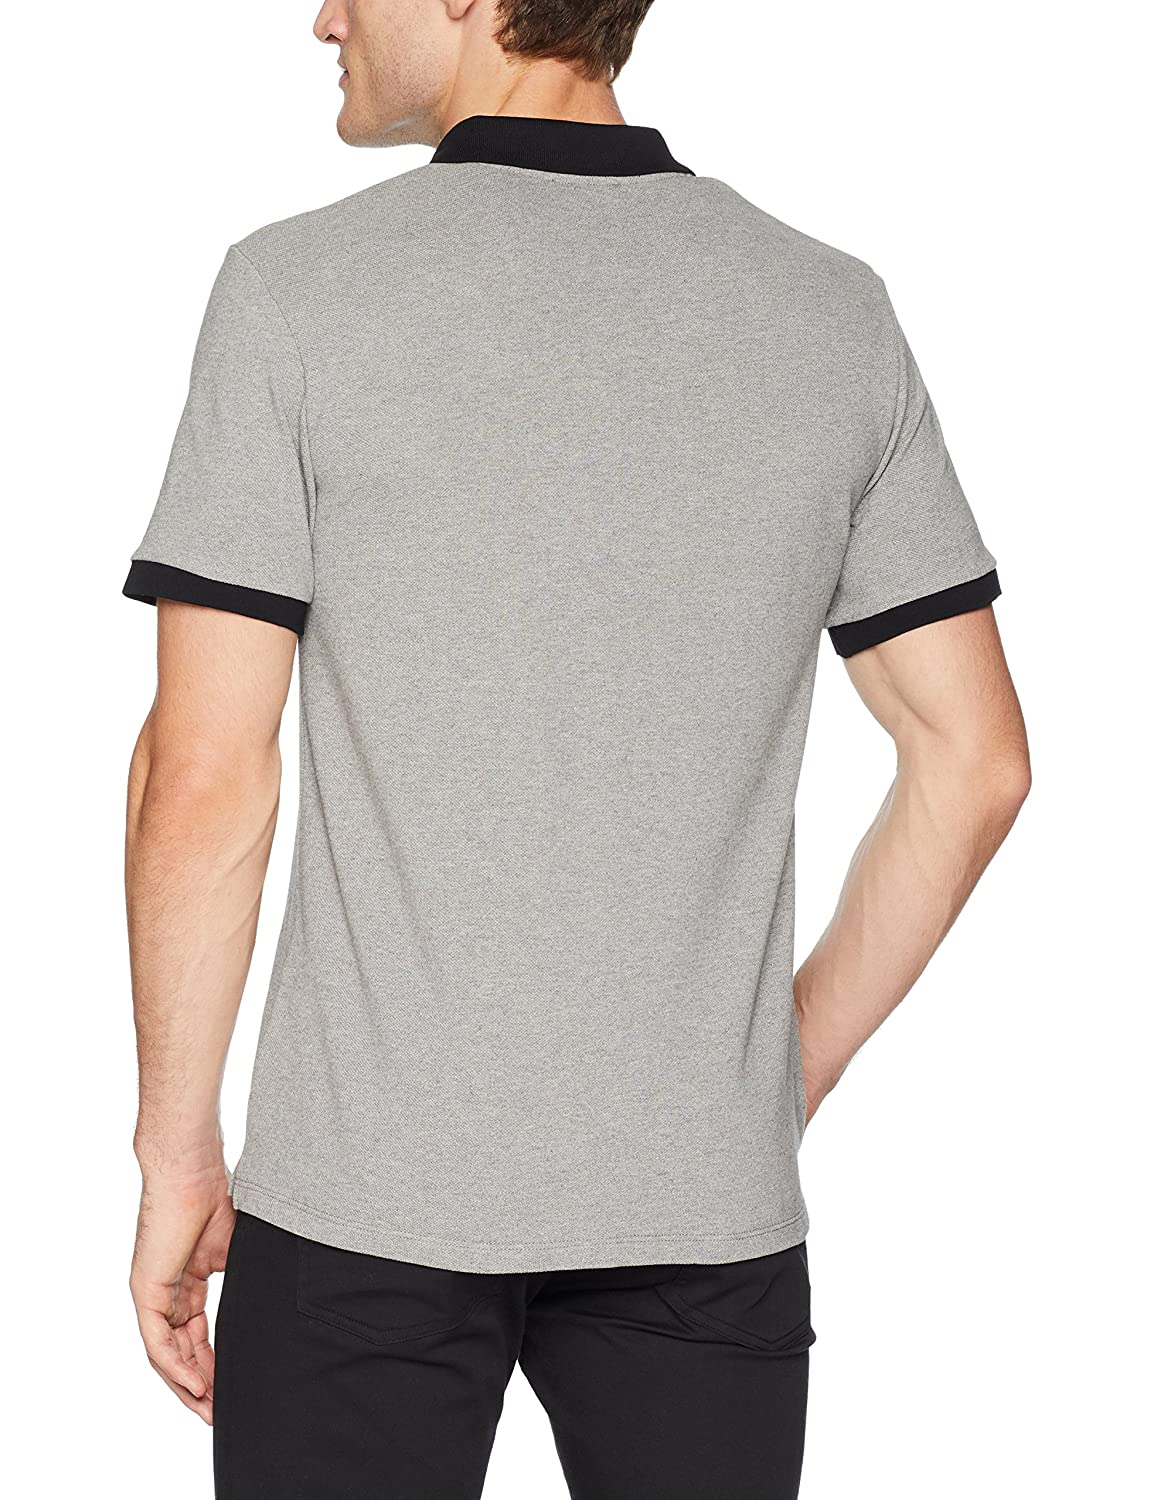 The Kooples Mens Mens Pique Polo Shirt with Contrasting Collar and Skull Patch The Kooples Men/'s HPOC17007K